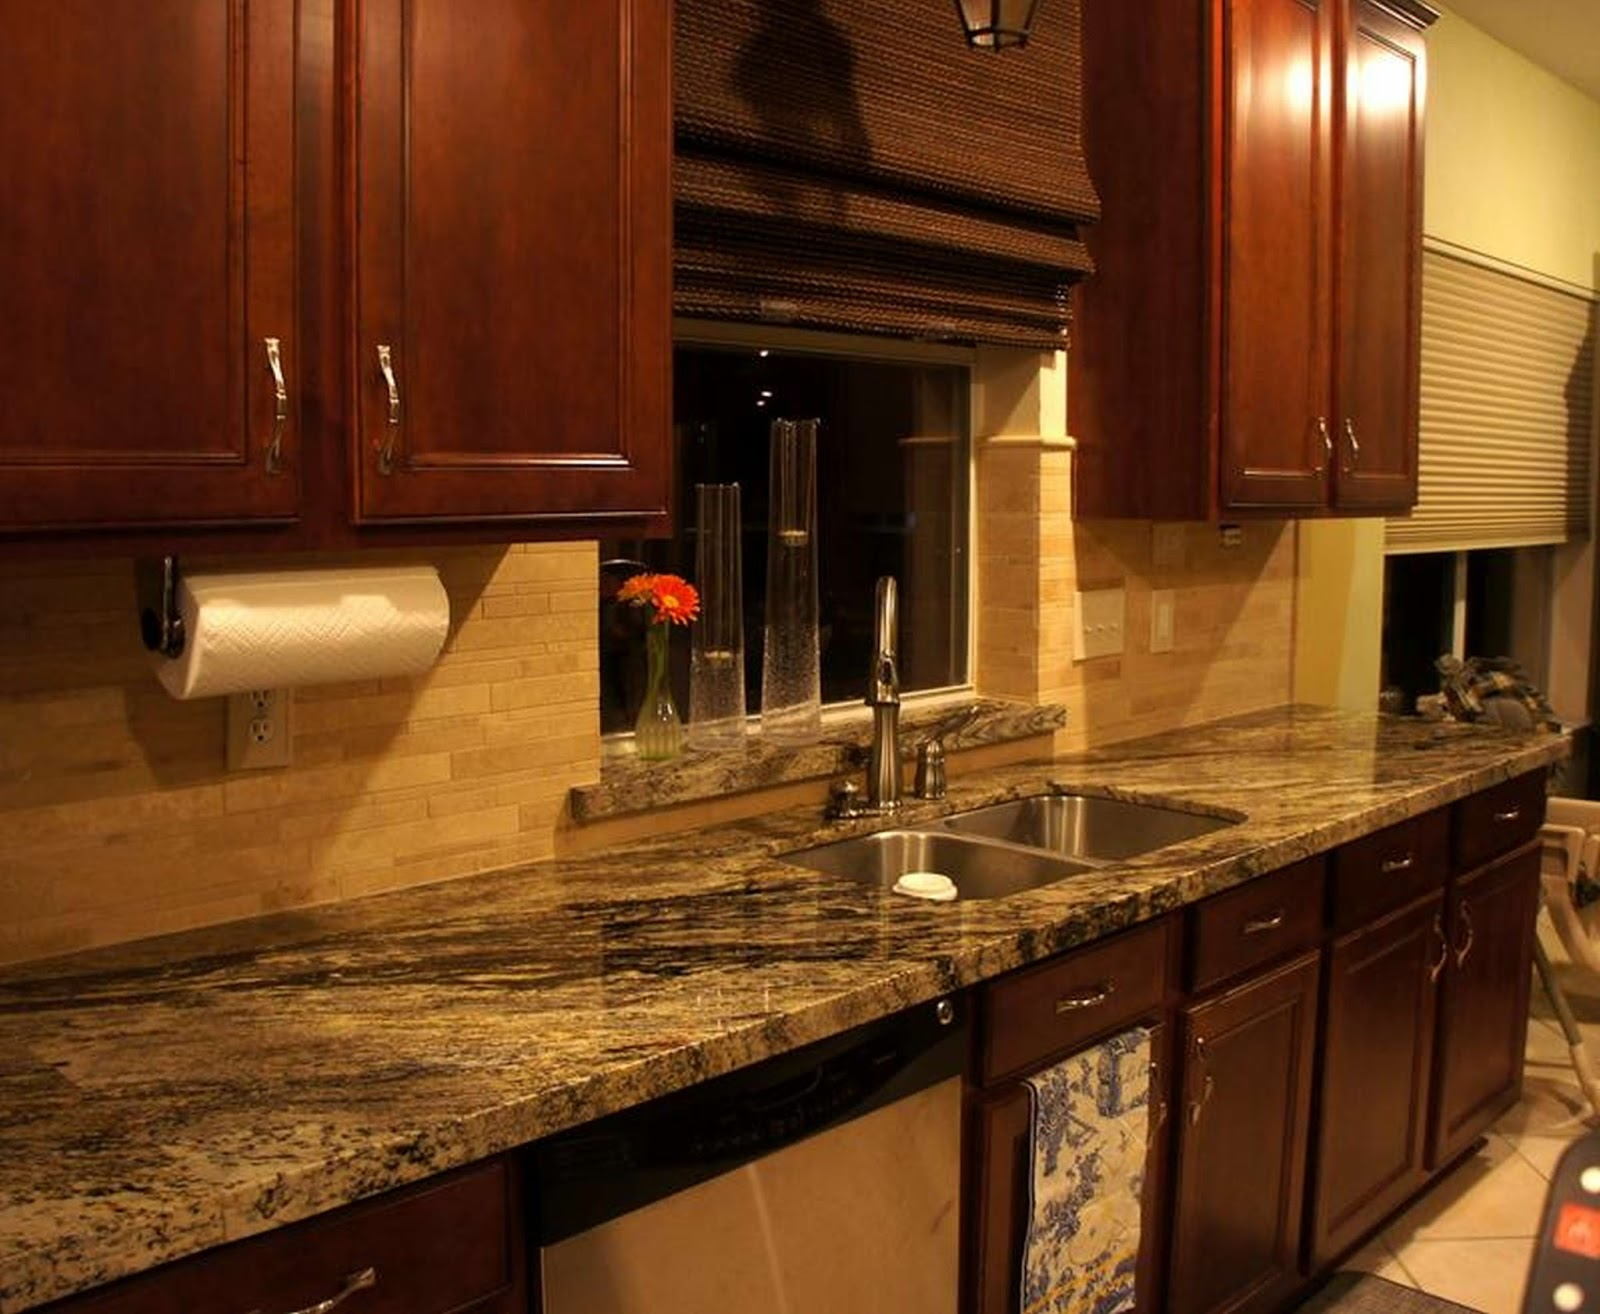 Rustic Tile Kitchen Countertops kitchen cabinets countertops ideas prices designs - home cheap